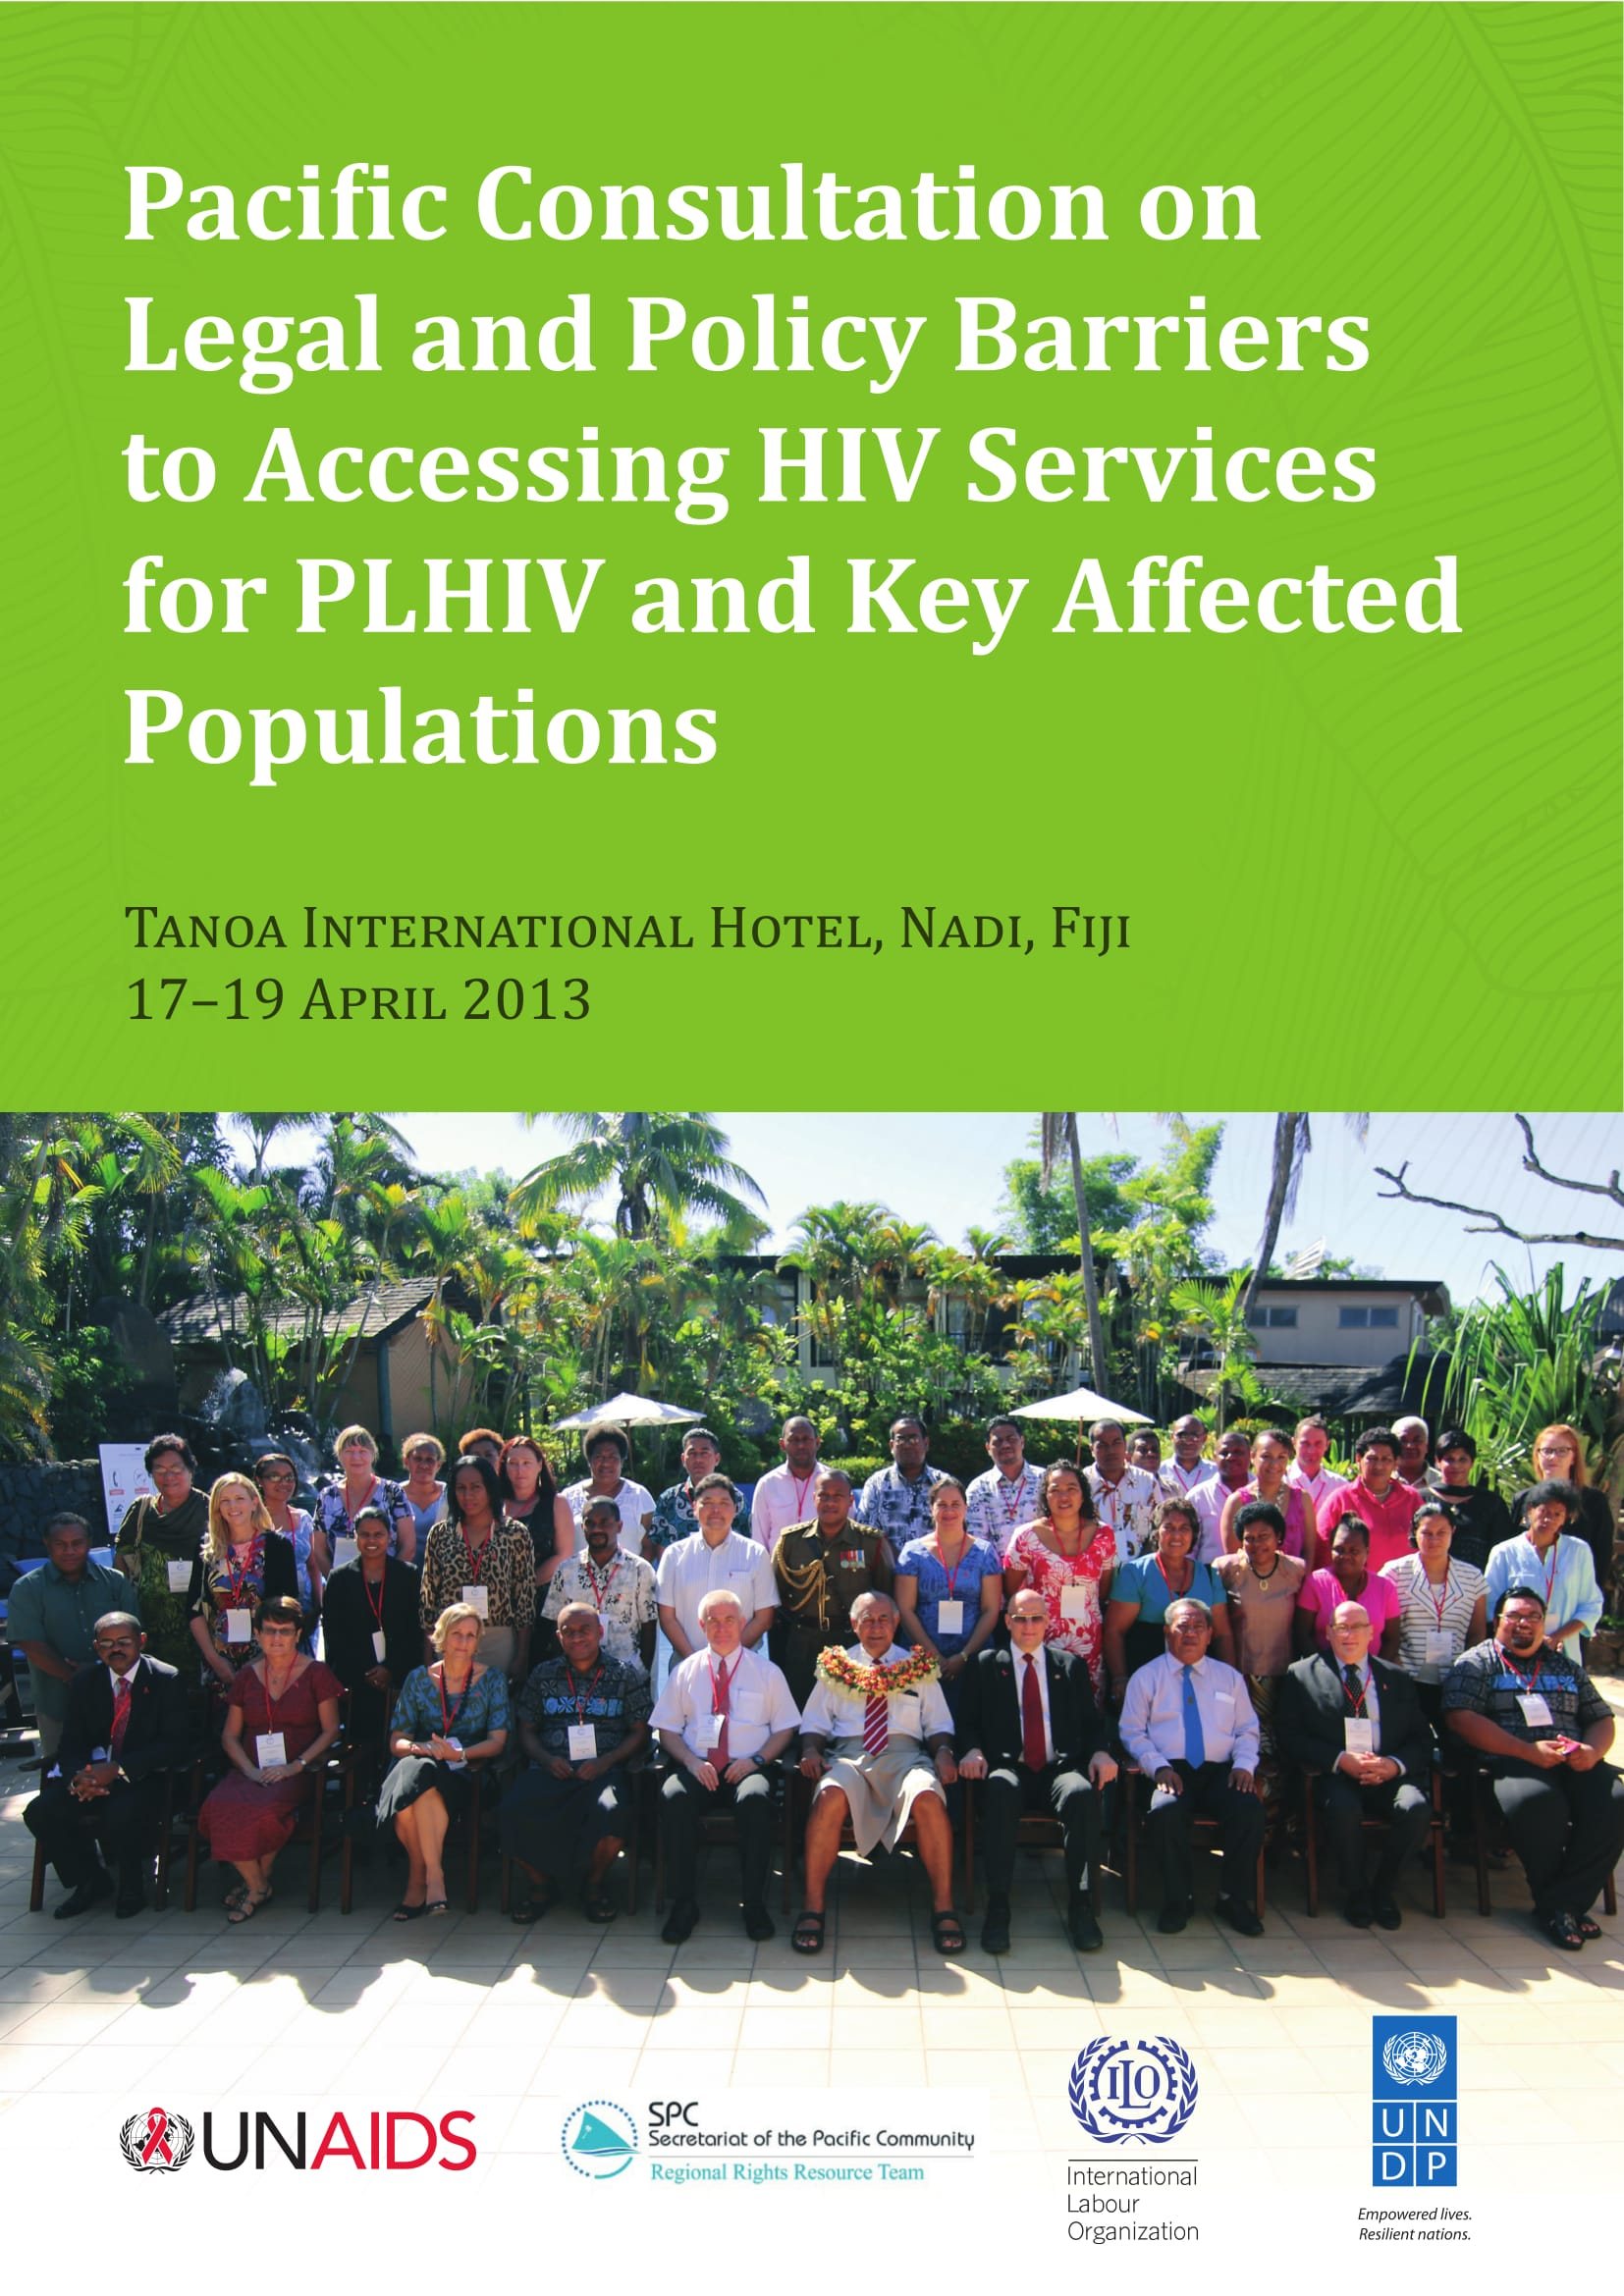 Pacific Consultation on Legal and Policy Barriers to Accessing HIV Services for PLHIV and Key Affected Populations: Meeting Report